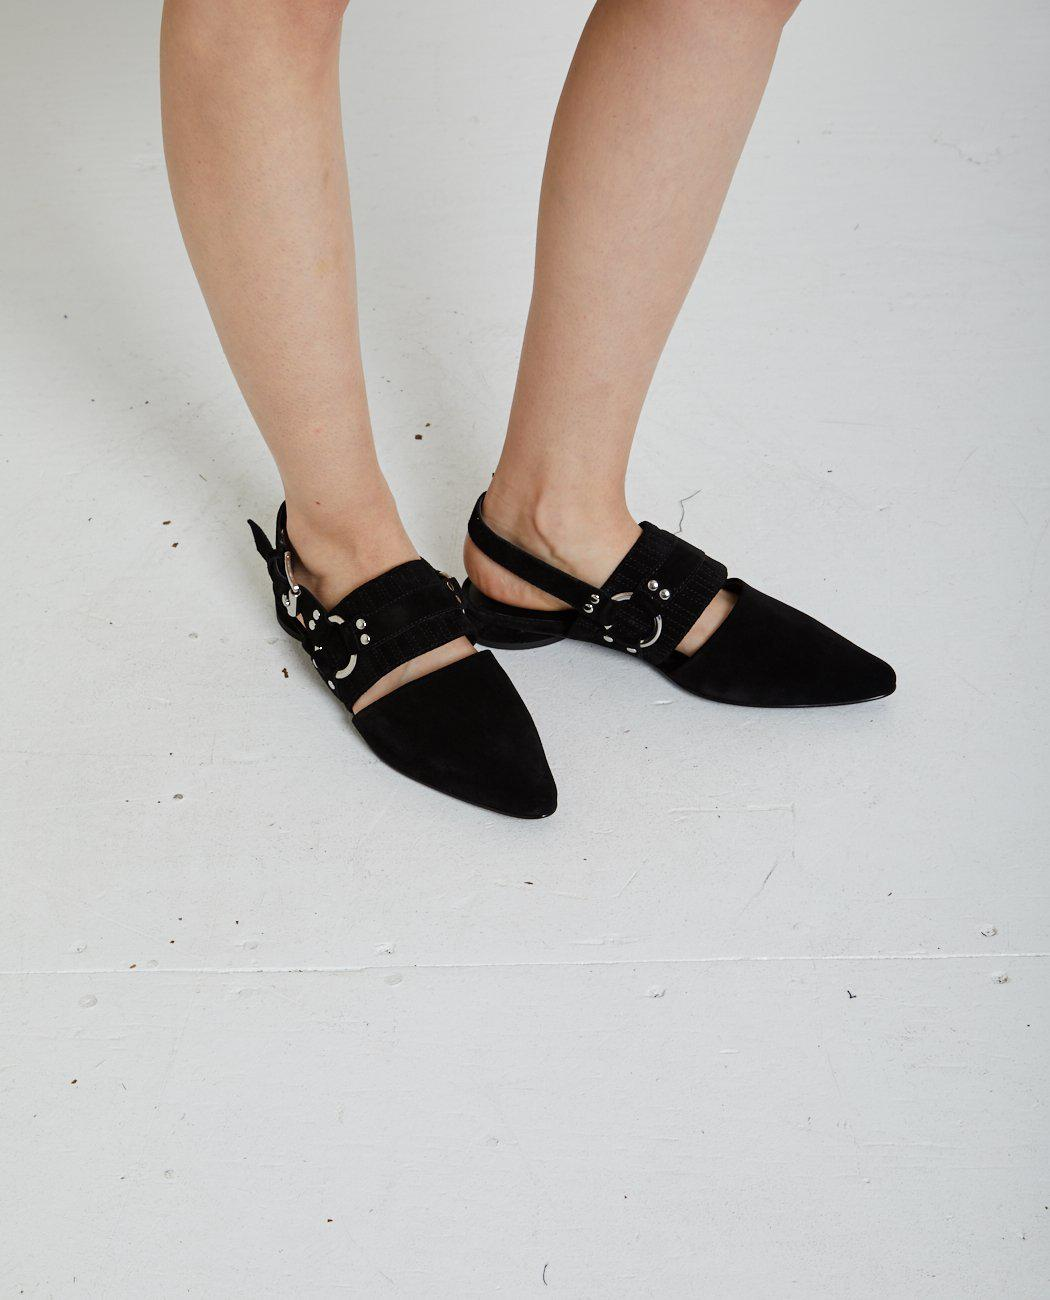 Opening Ceremony Embroidered Square-Toe Loafers high quality buy online buy cheap Inexpensive with credit card online fpSDf3